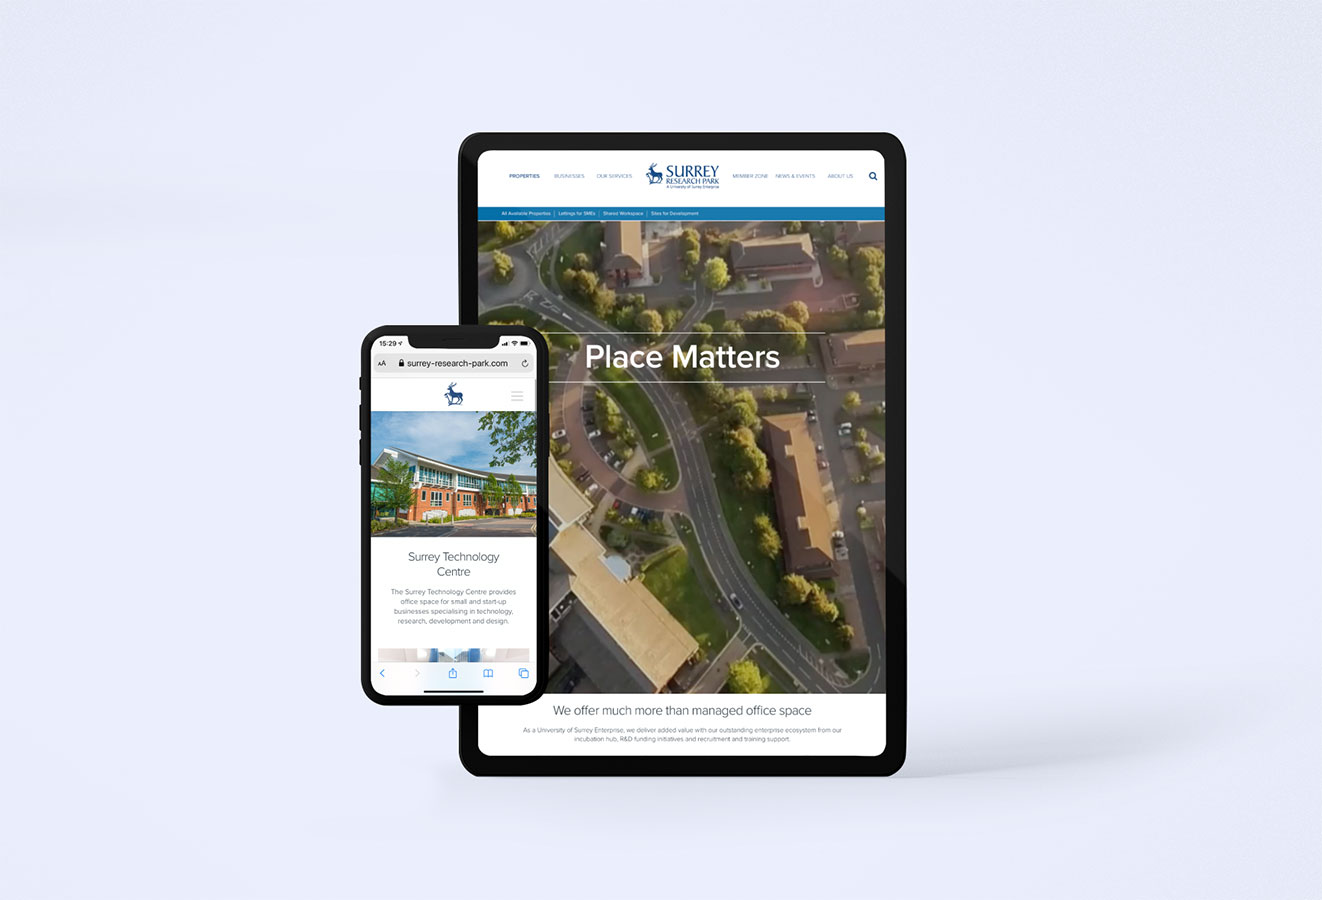 iPhone and iPad views of Surrey Research Park landing pages for the technology Centre and managed office space